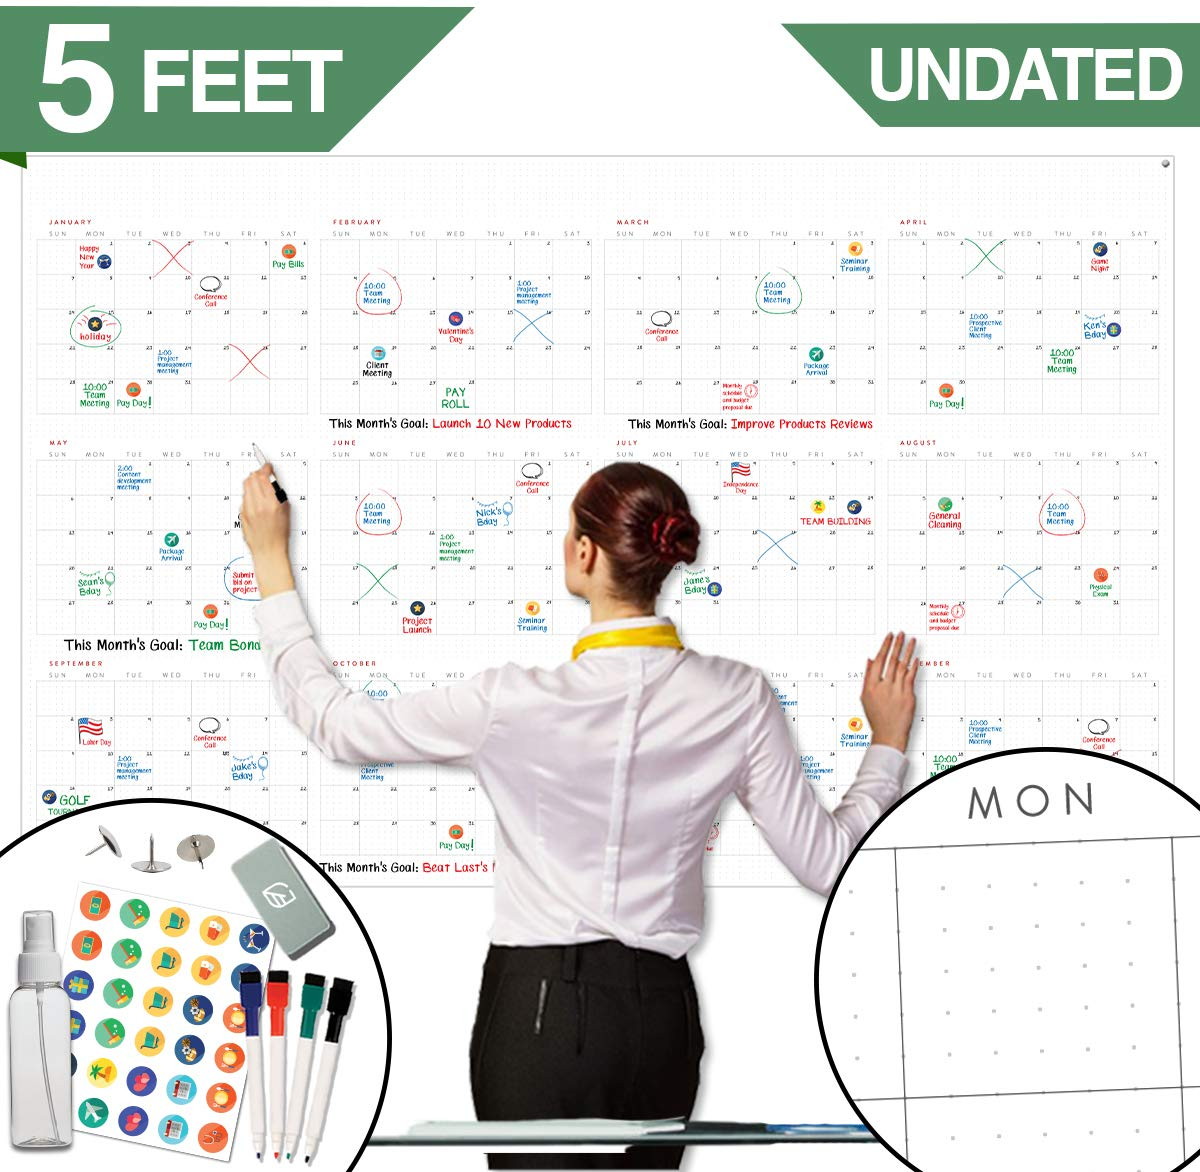 Large Dry Erase Wall Calendar - 60'' x 38'' - Undated Blank 2020 Reusable Yearly Calendar - Giant Whiteboard Year Poster - Laminated Office Jumbo 12 Month Calendar by Lushleaf Designs